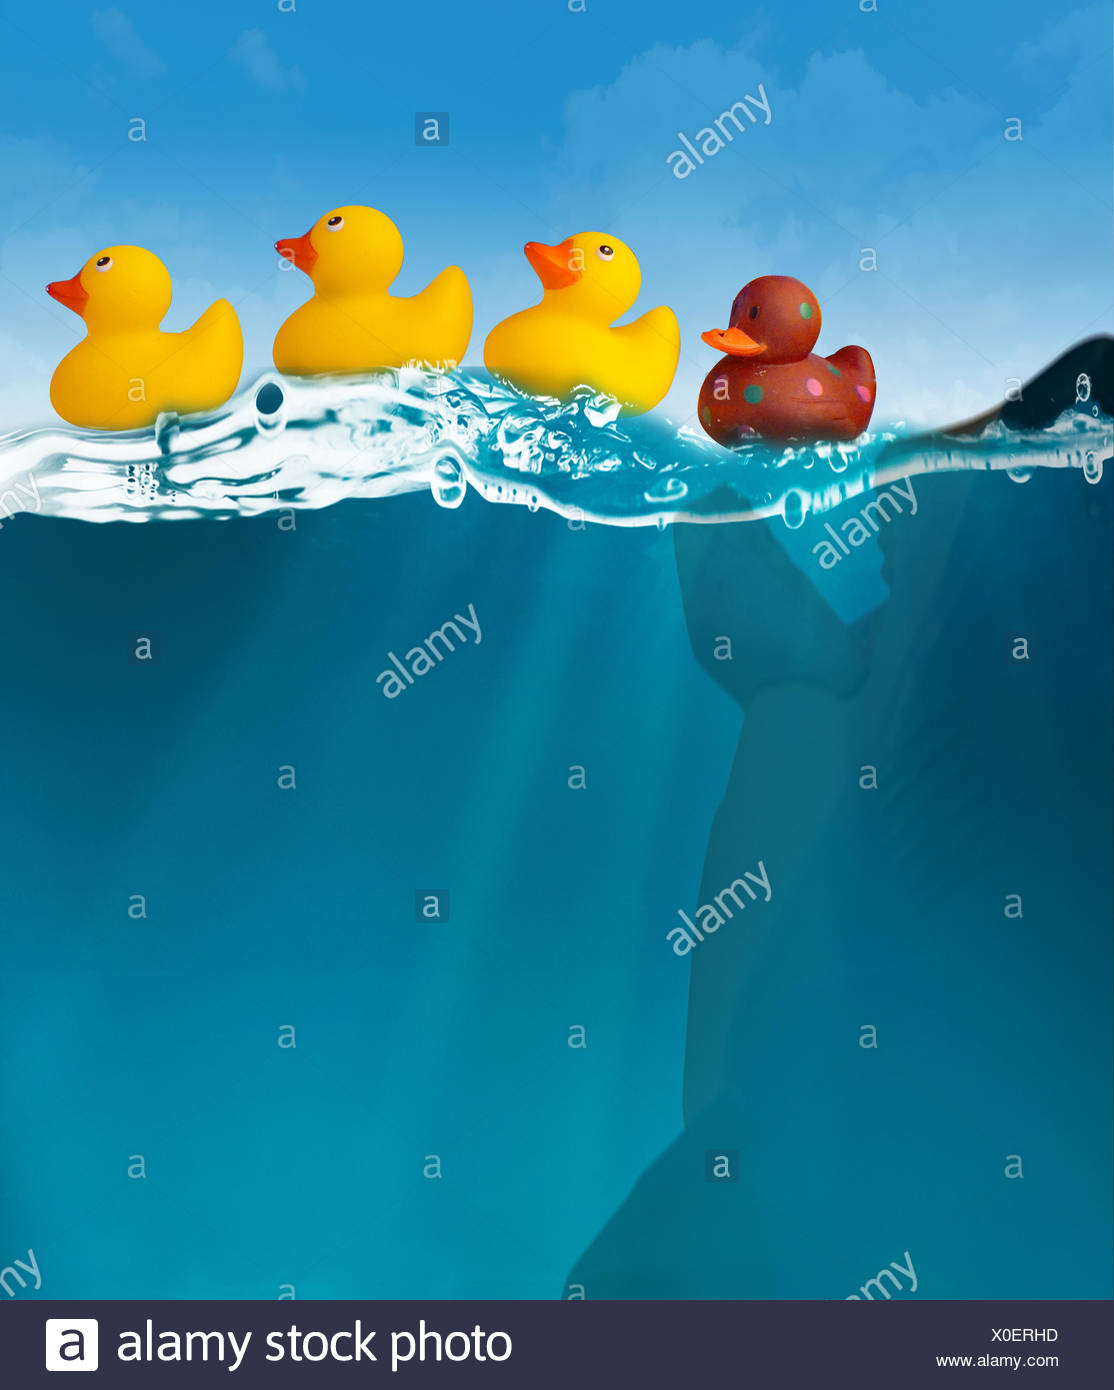 Close-Up Side View Of Plastic Ducks In Water - Stock Image